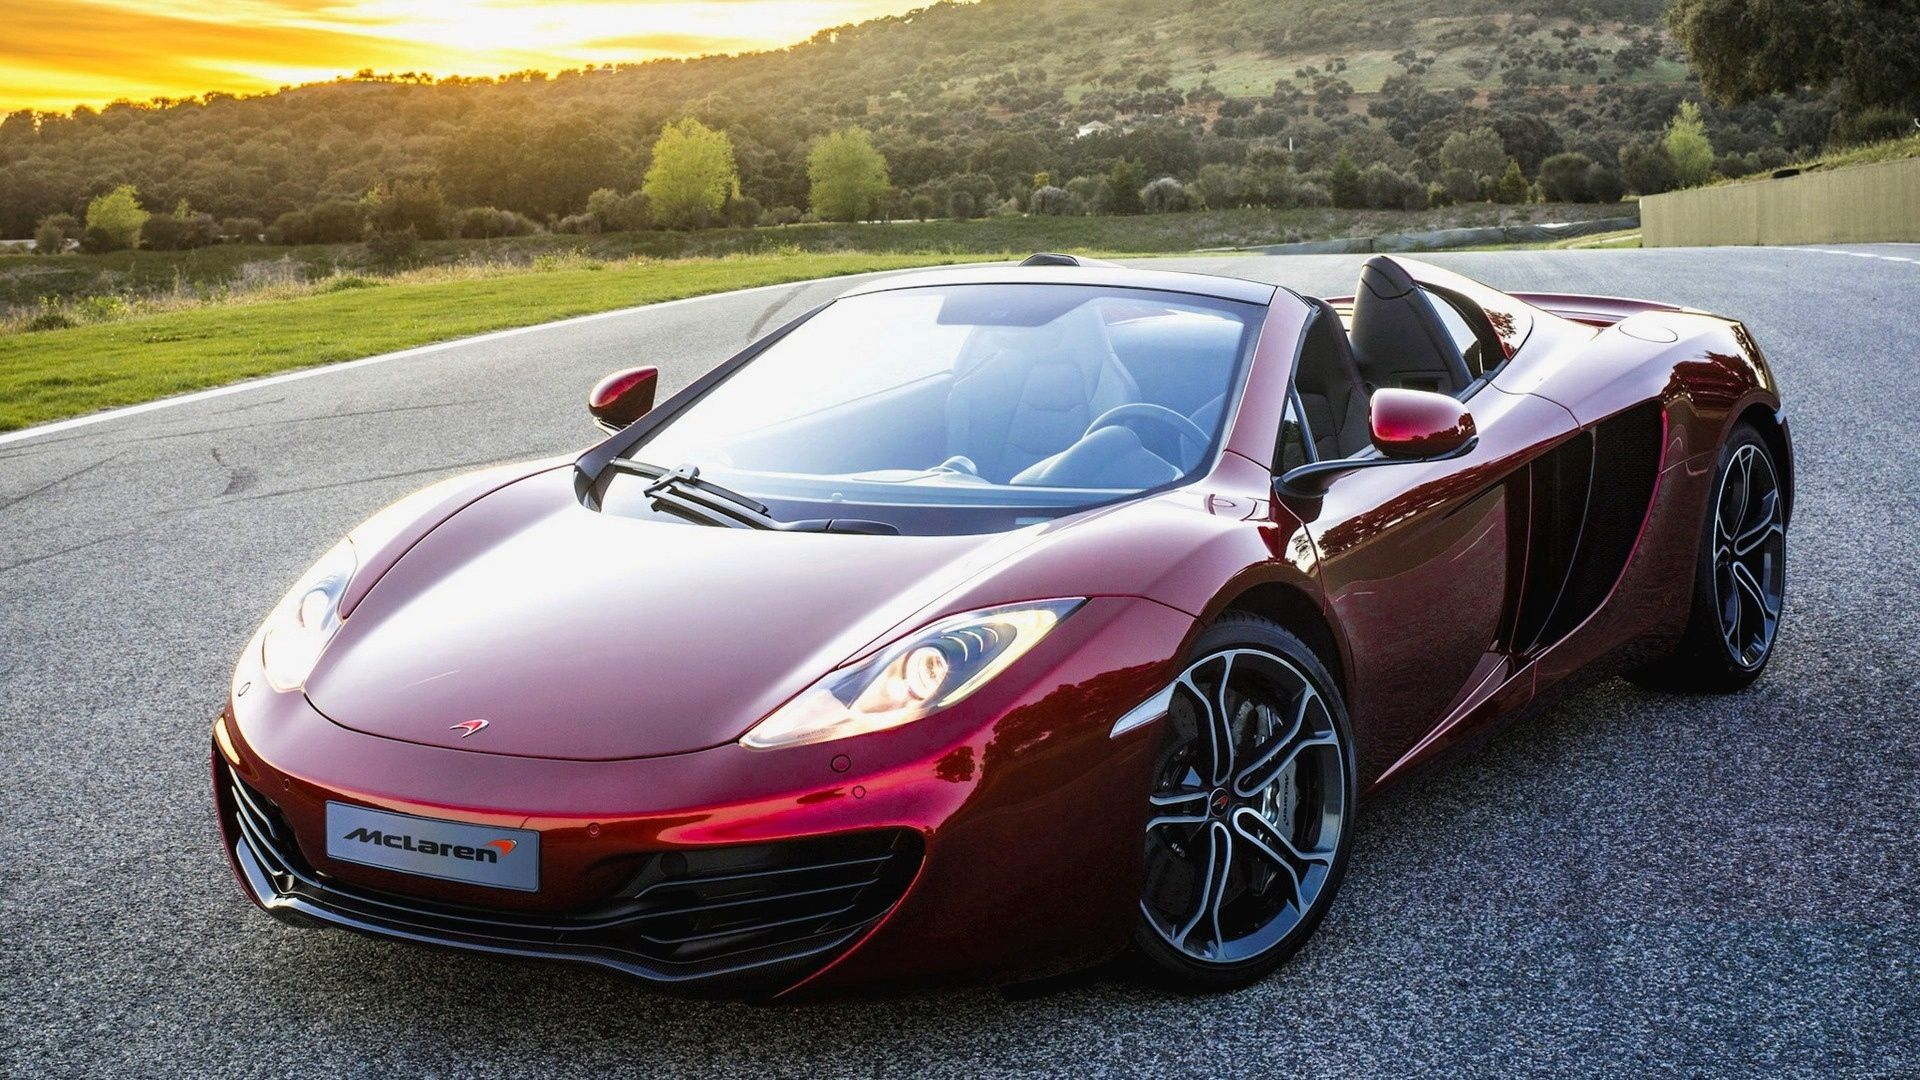 103440 Screensavers and Wallpapers Beautiful for phone. Download Mclaren, Cars, Car, Beautiful, 2012, New, Mp4-12C, Spyder pictures for free